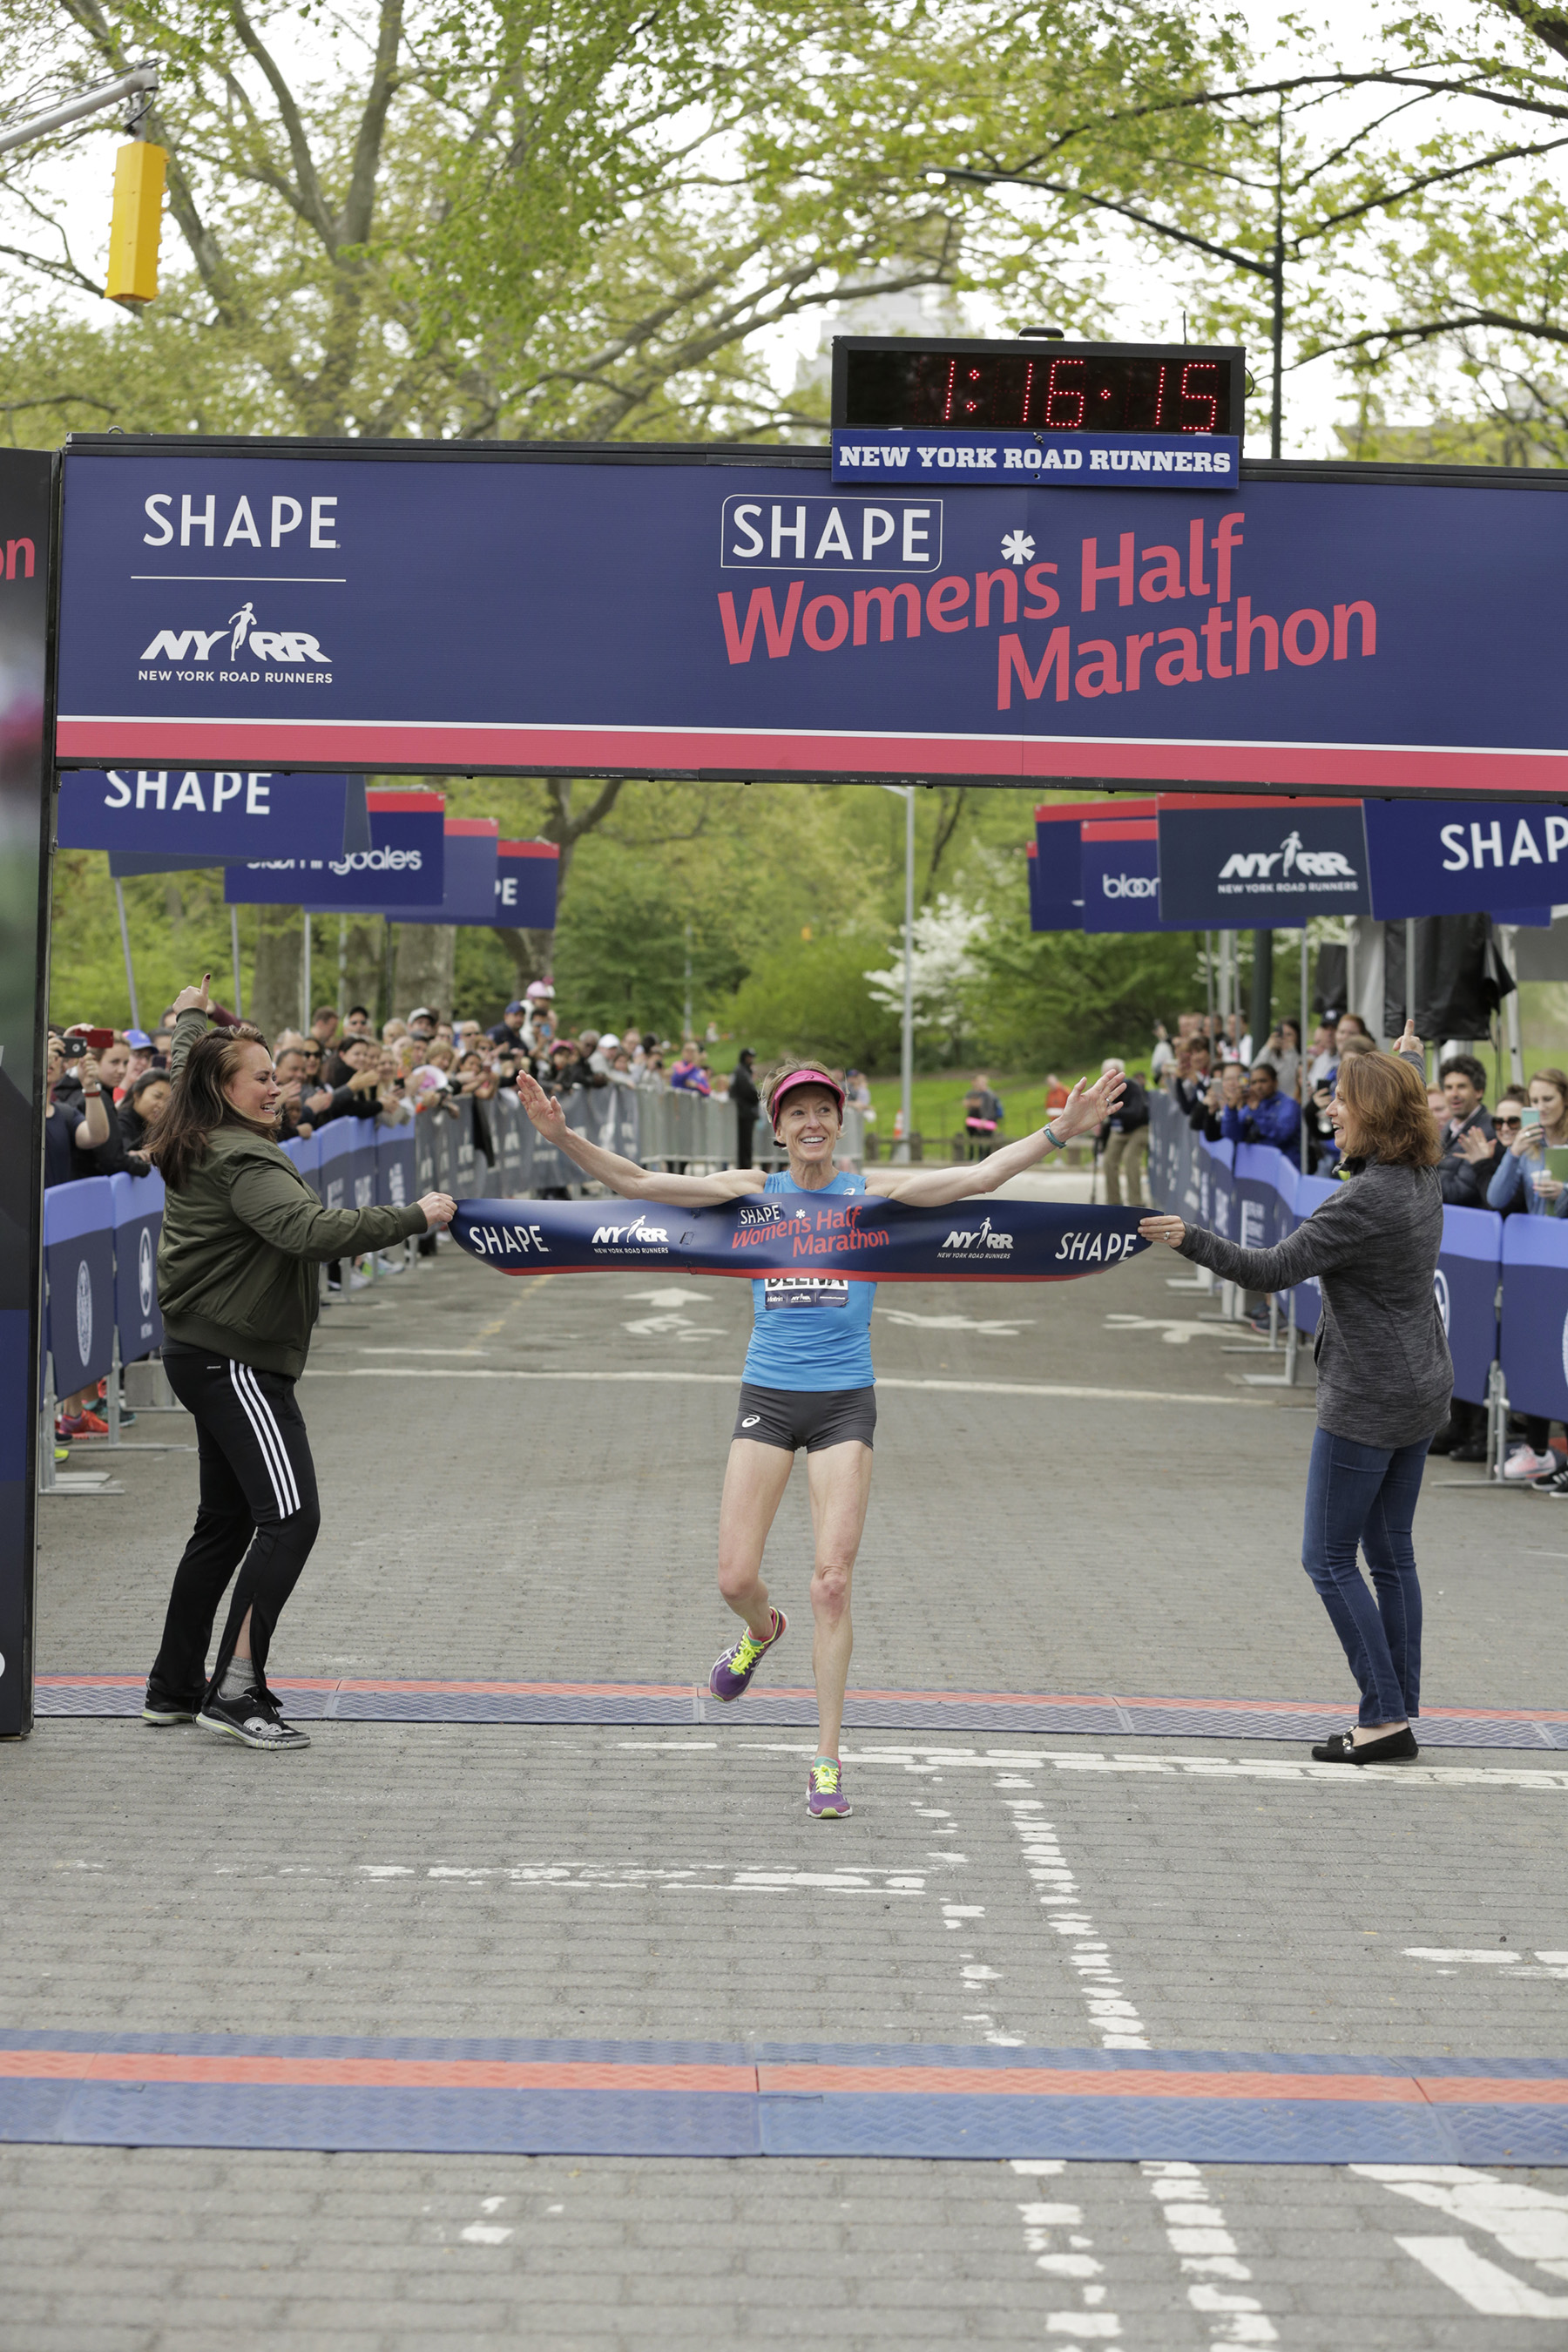 World masters half-marathon record-holder Deena Kastor takes first place at the SHAPE Women's Half Marathon on Sunday, April 30. The three time champion crossed the finish line in 01:16:17.